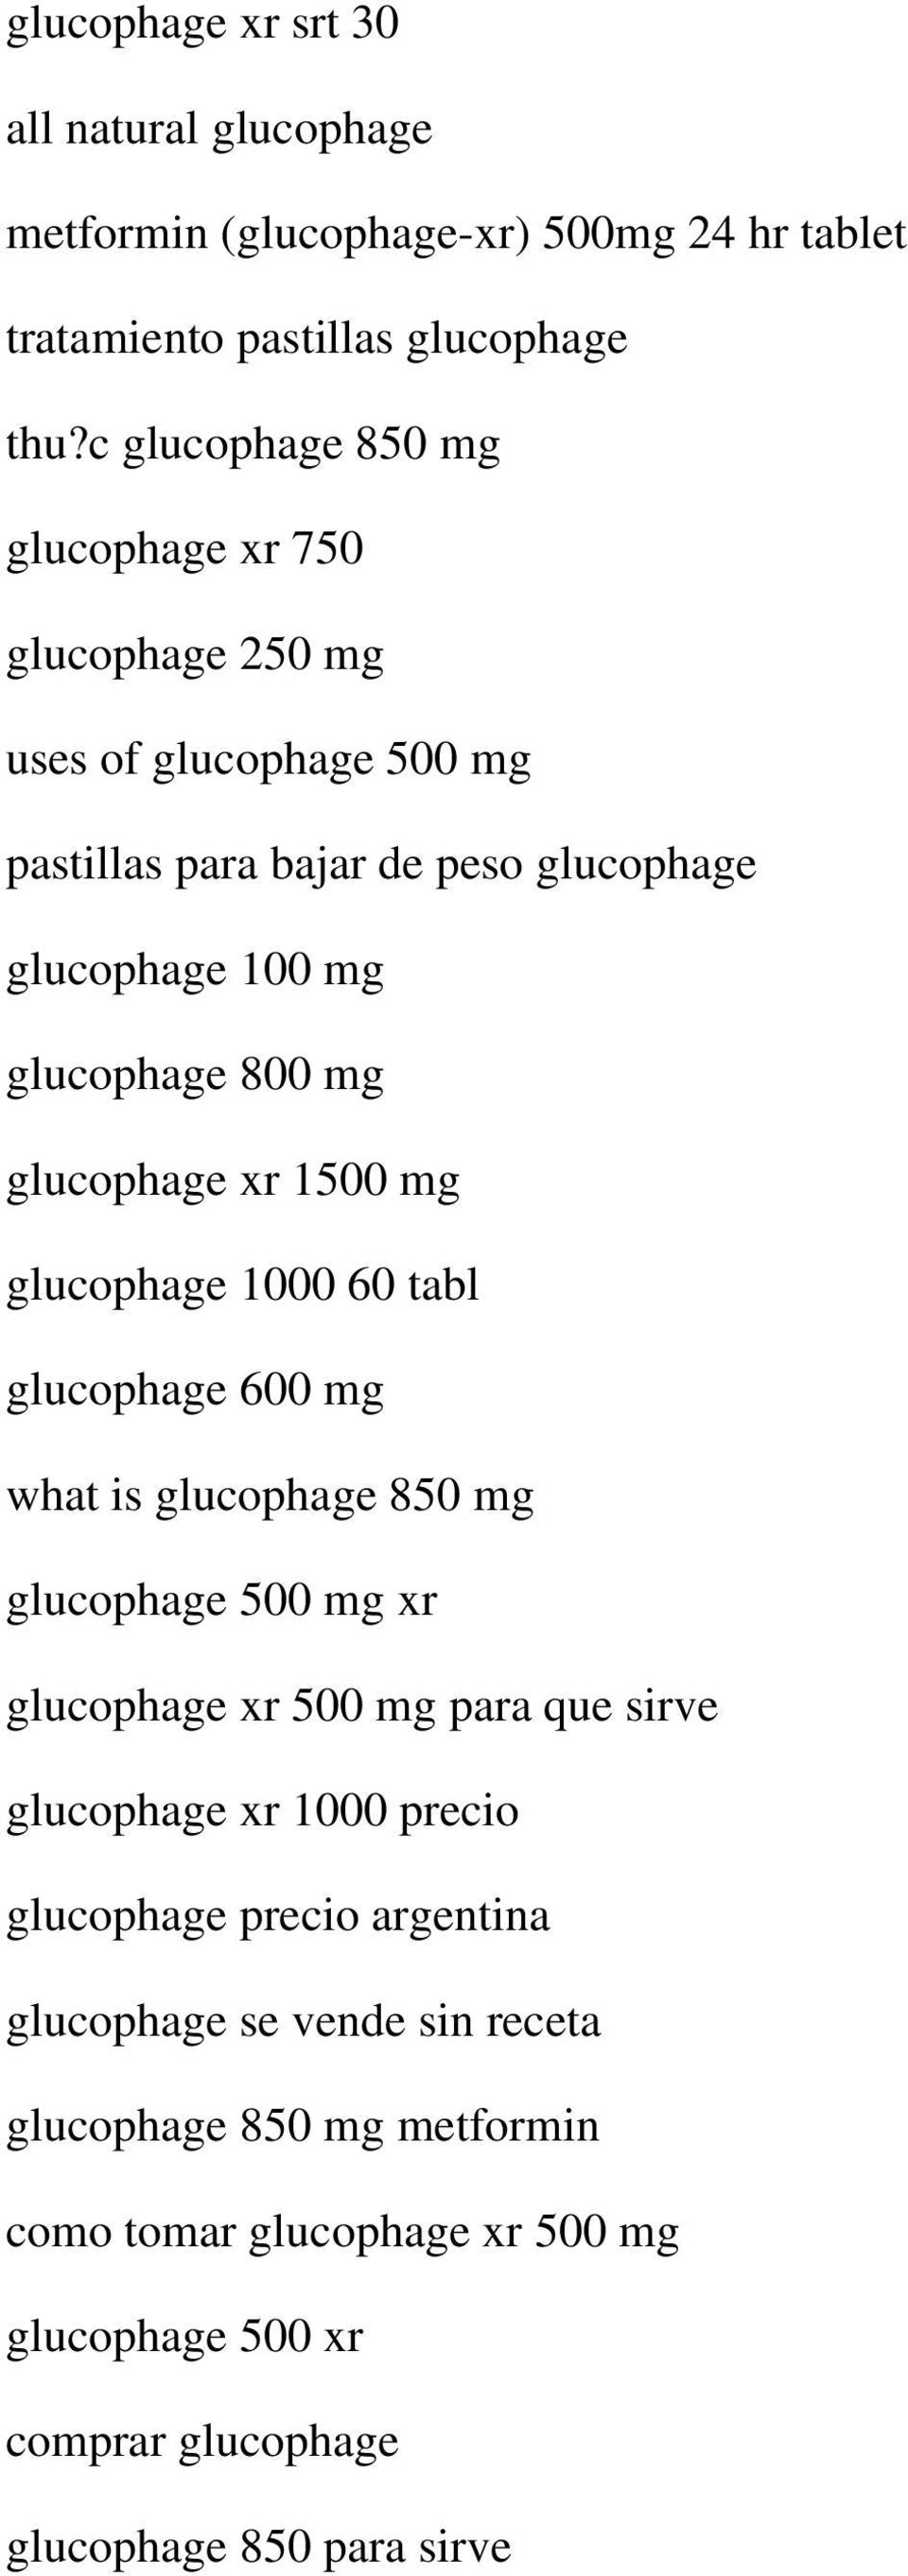 glucophage xr 1500 mg glucophage 1000 60 tabl glucophage 600 mg what is glucophage 850 mg glucophage 500 mg xr glucophage xr 500 mg para que sirve glucophage